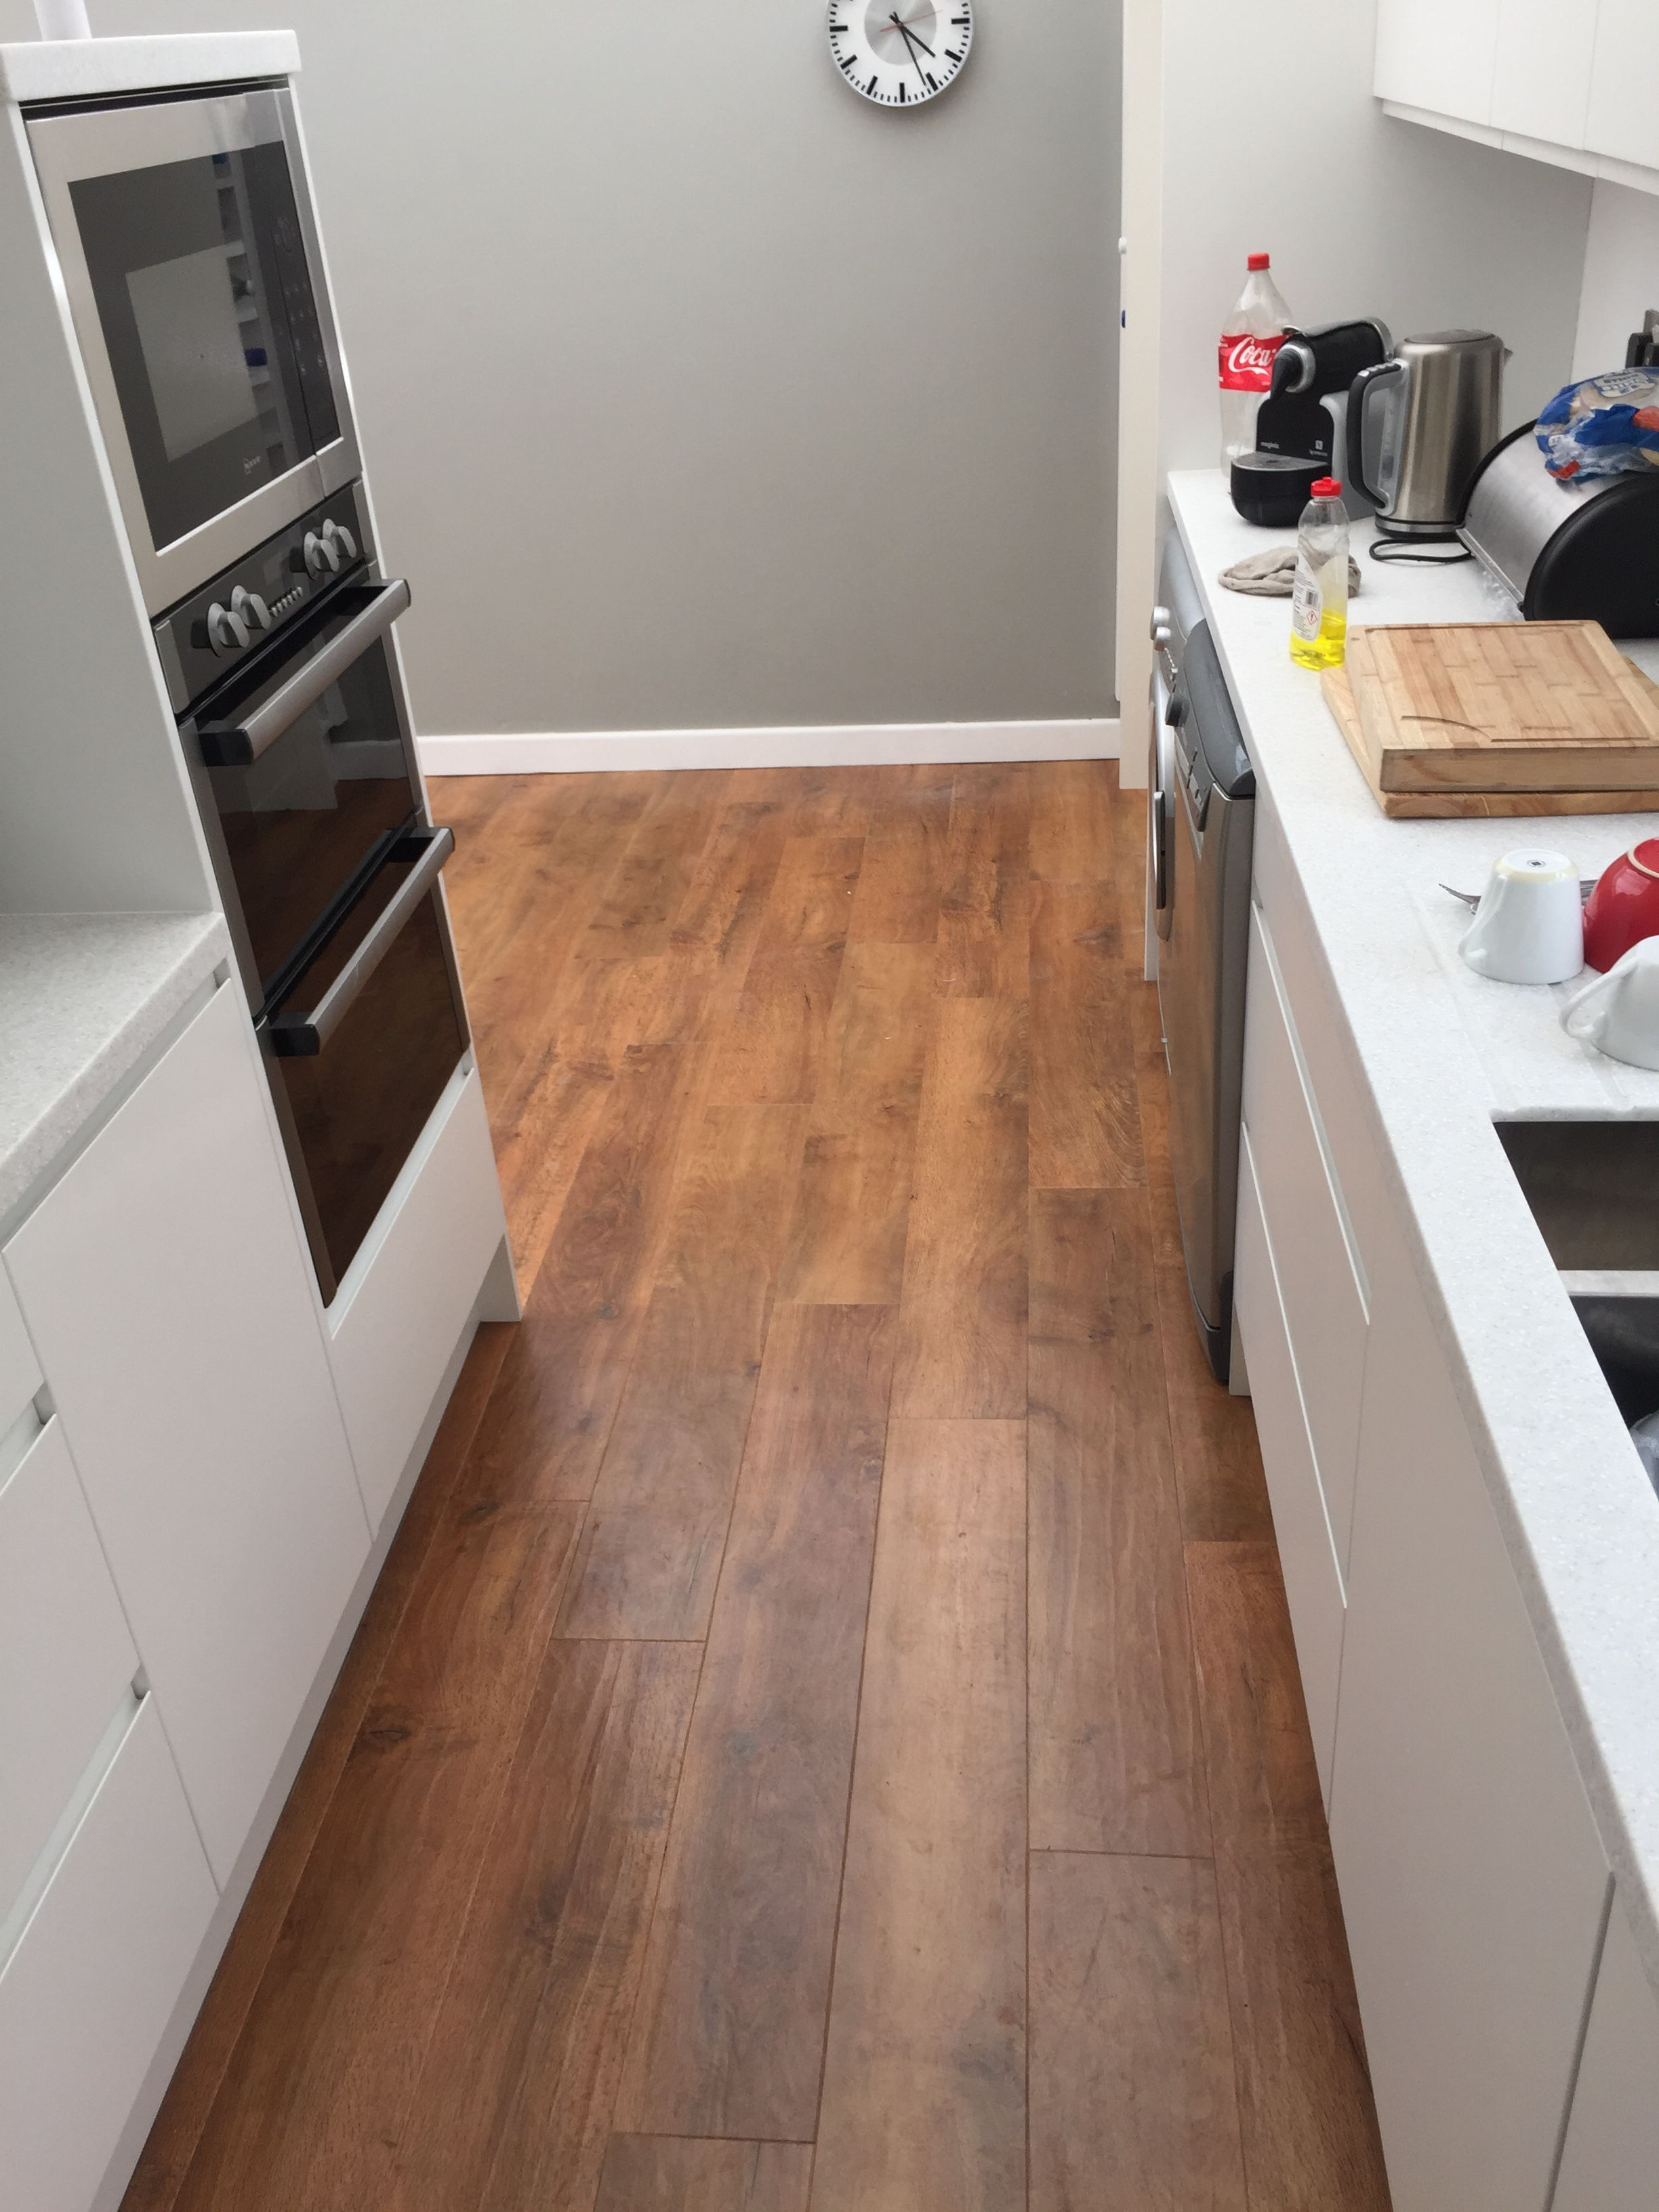 Kitchen Floor Vinyl Tiles Karndean Da Vinci Arno Smoked Oak Vinyl Tiles And Bathrooms